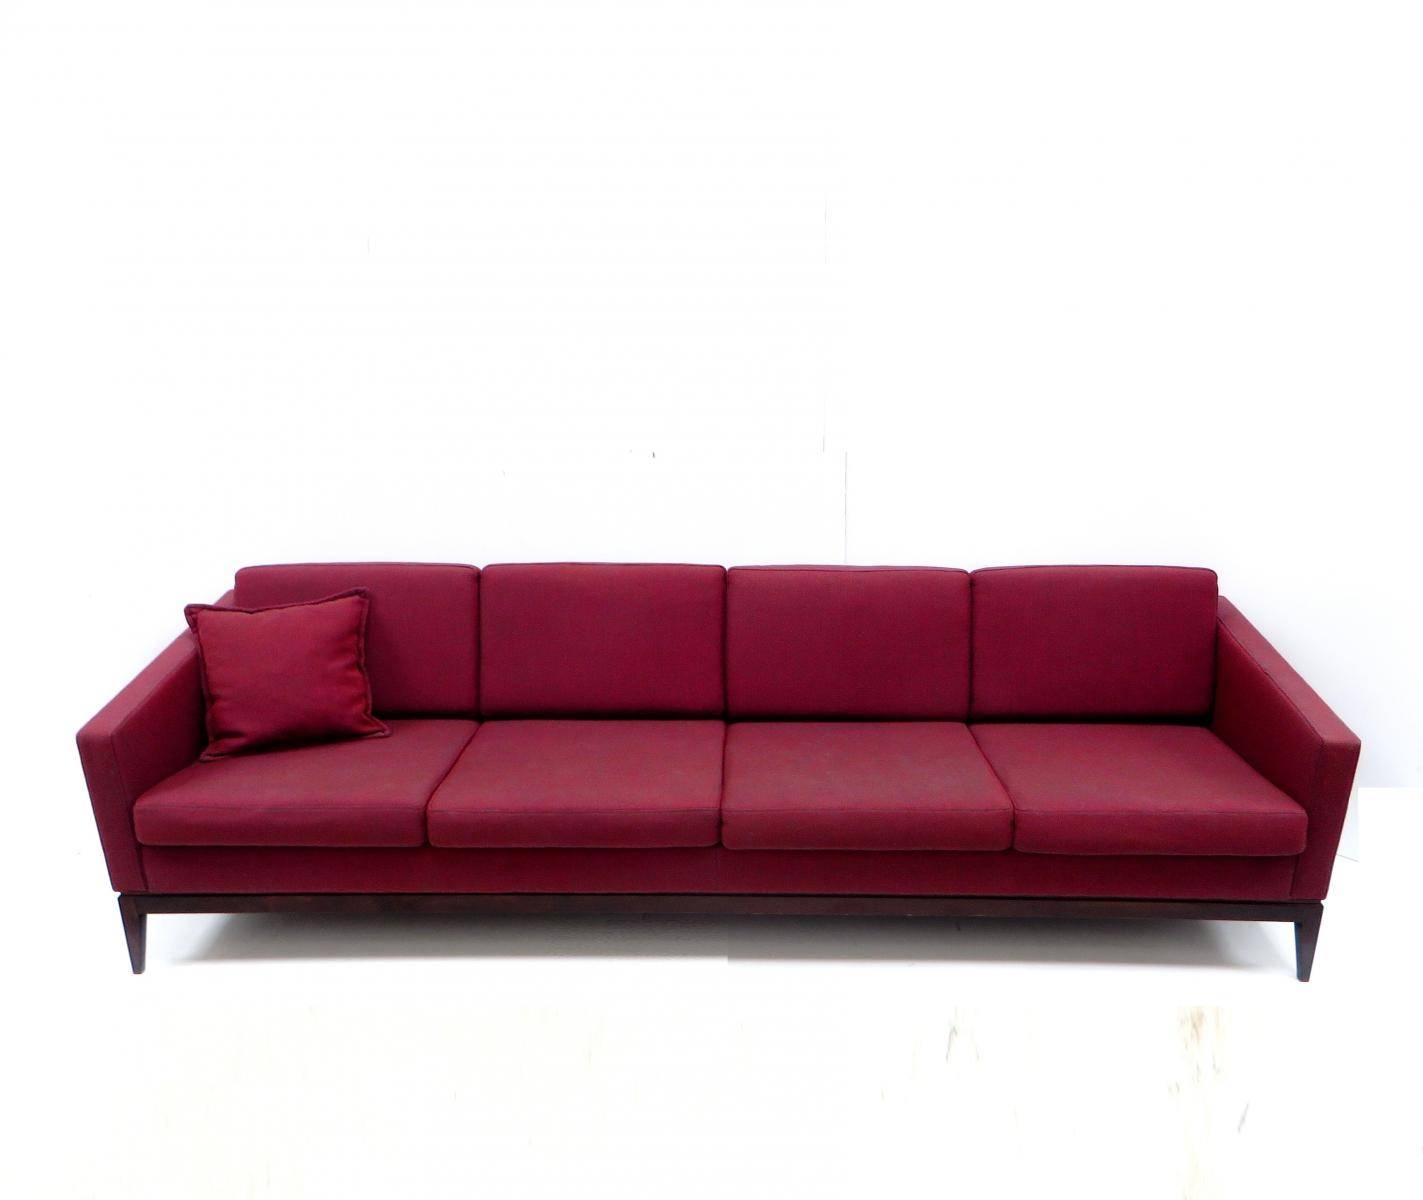 Large Vintage Burgundy Four-Seater Sofa For Sale At Pamono inside Four Seater Sofas (Image 16 of 30)